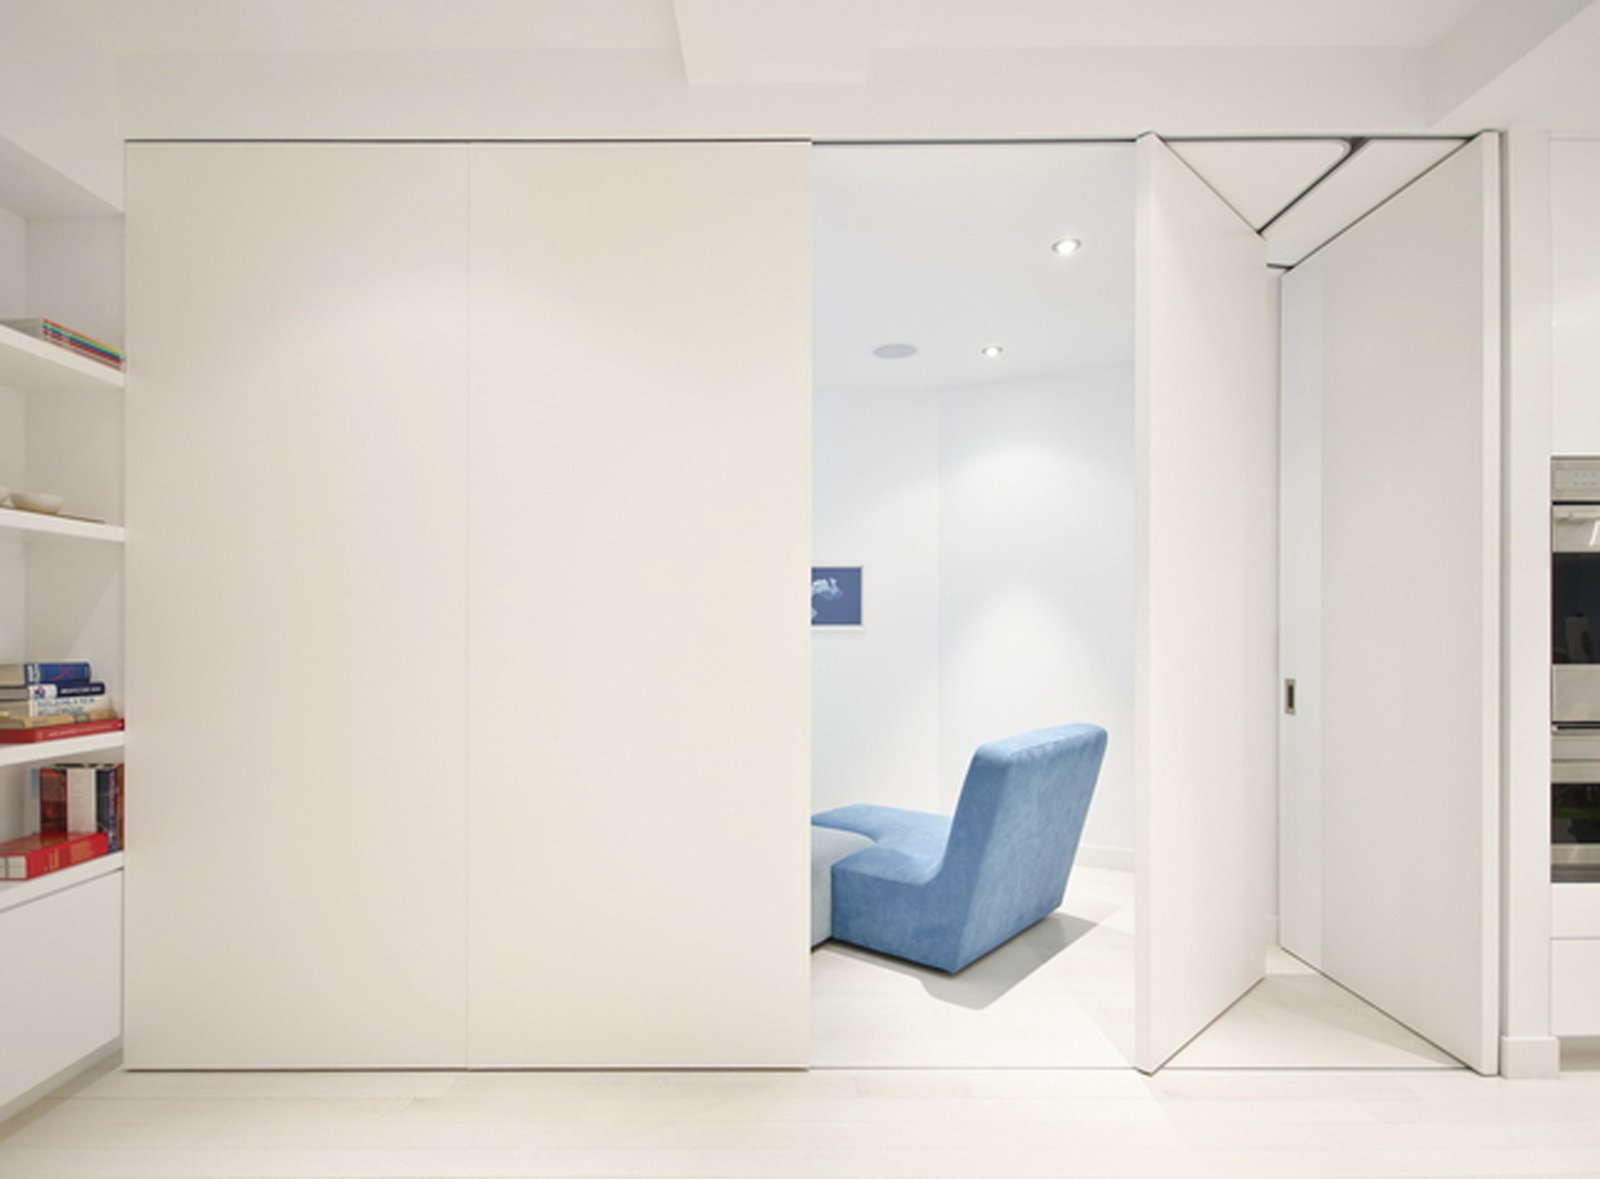 As they open, they fold and stack flush. There was no room for a pocket door since the oven is directly next to the partitioned-off space.  University Place Apartment by Diana Budds from Novel Space-Saving Designs